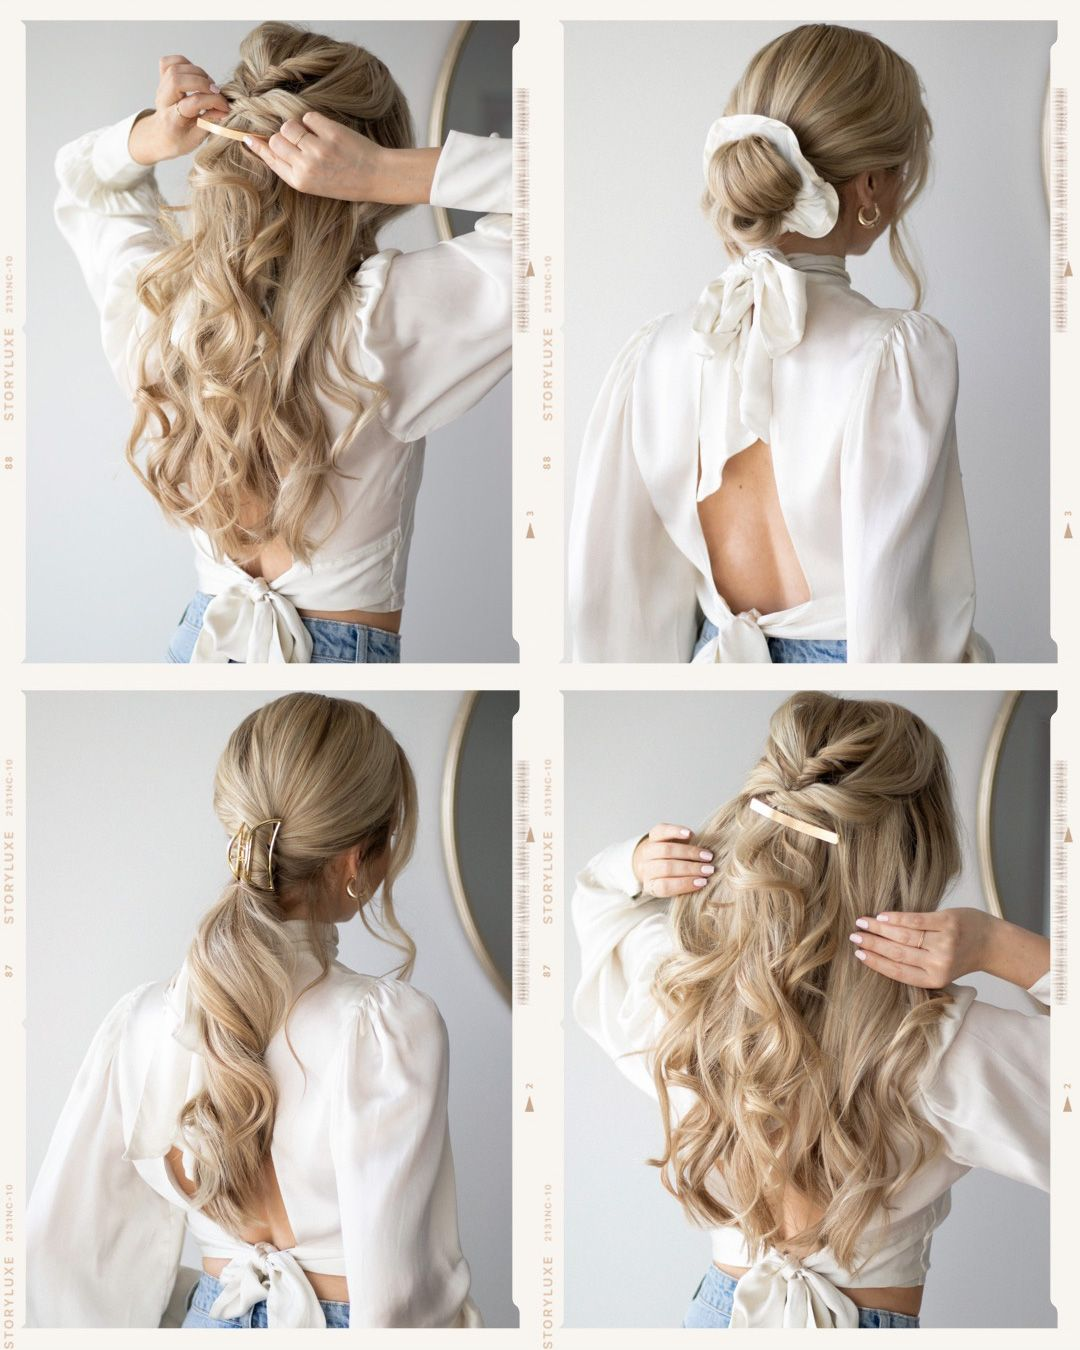 Easy Hairstyles For Winter 2020 Alex Gaboury Winter Hairstyles Hair Styles Easy Hairstyles